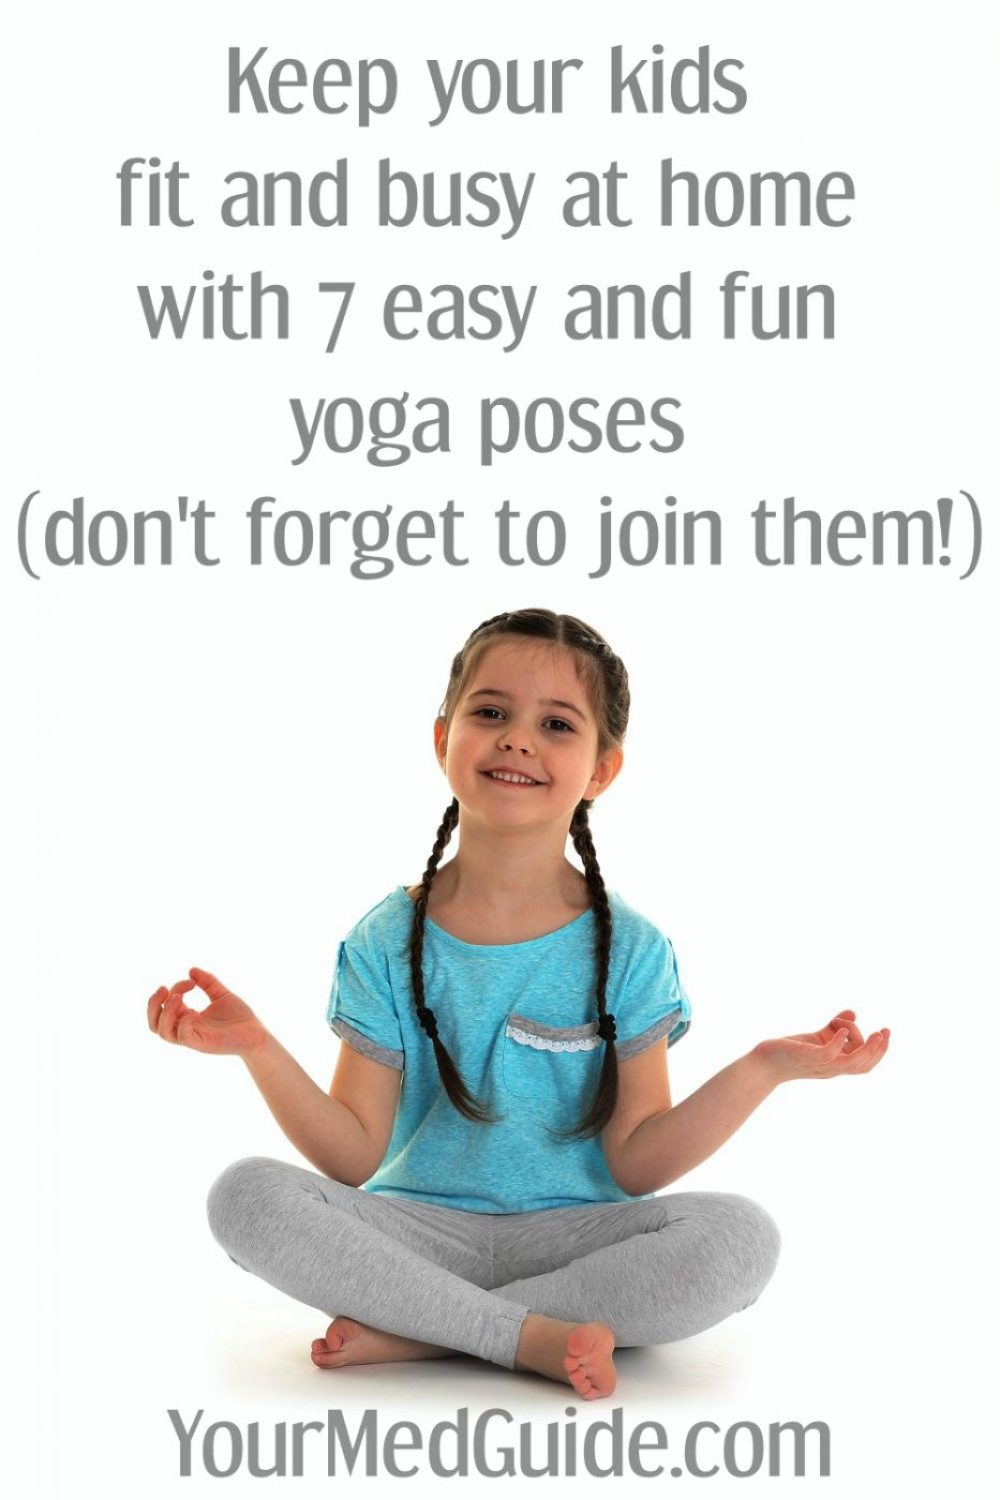 Easy yoga poses for kids to do at home